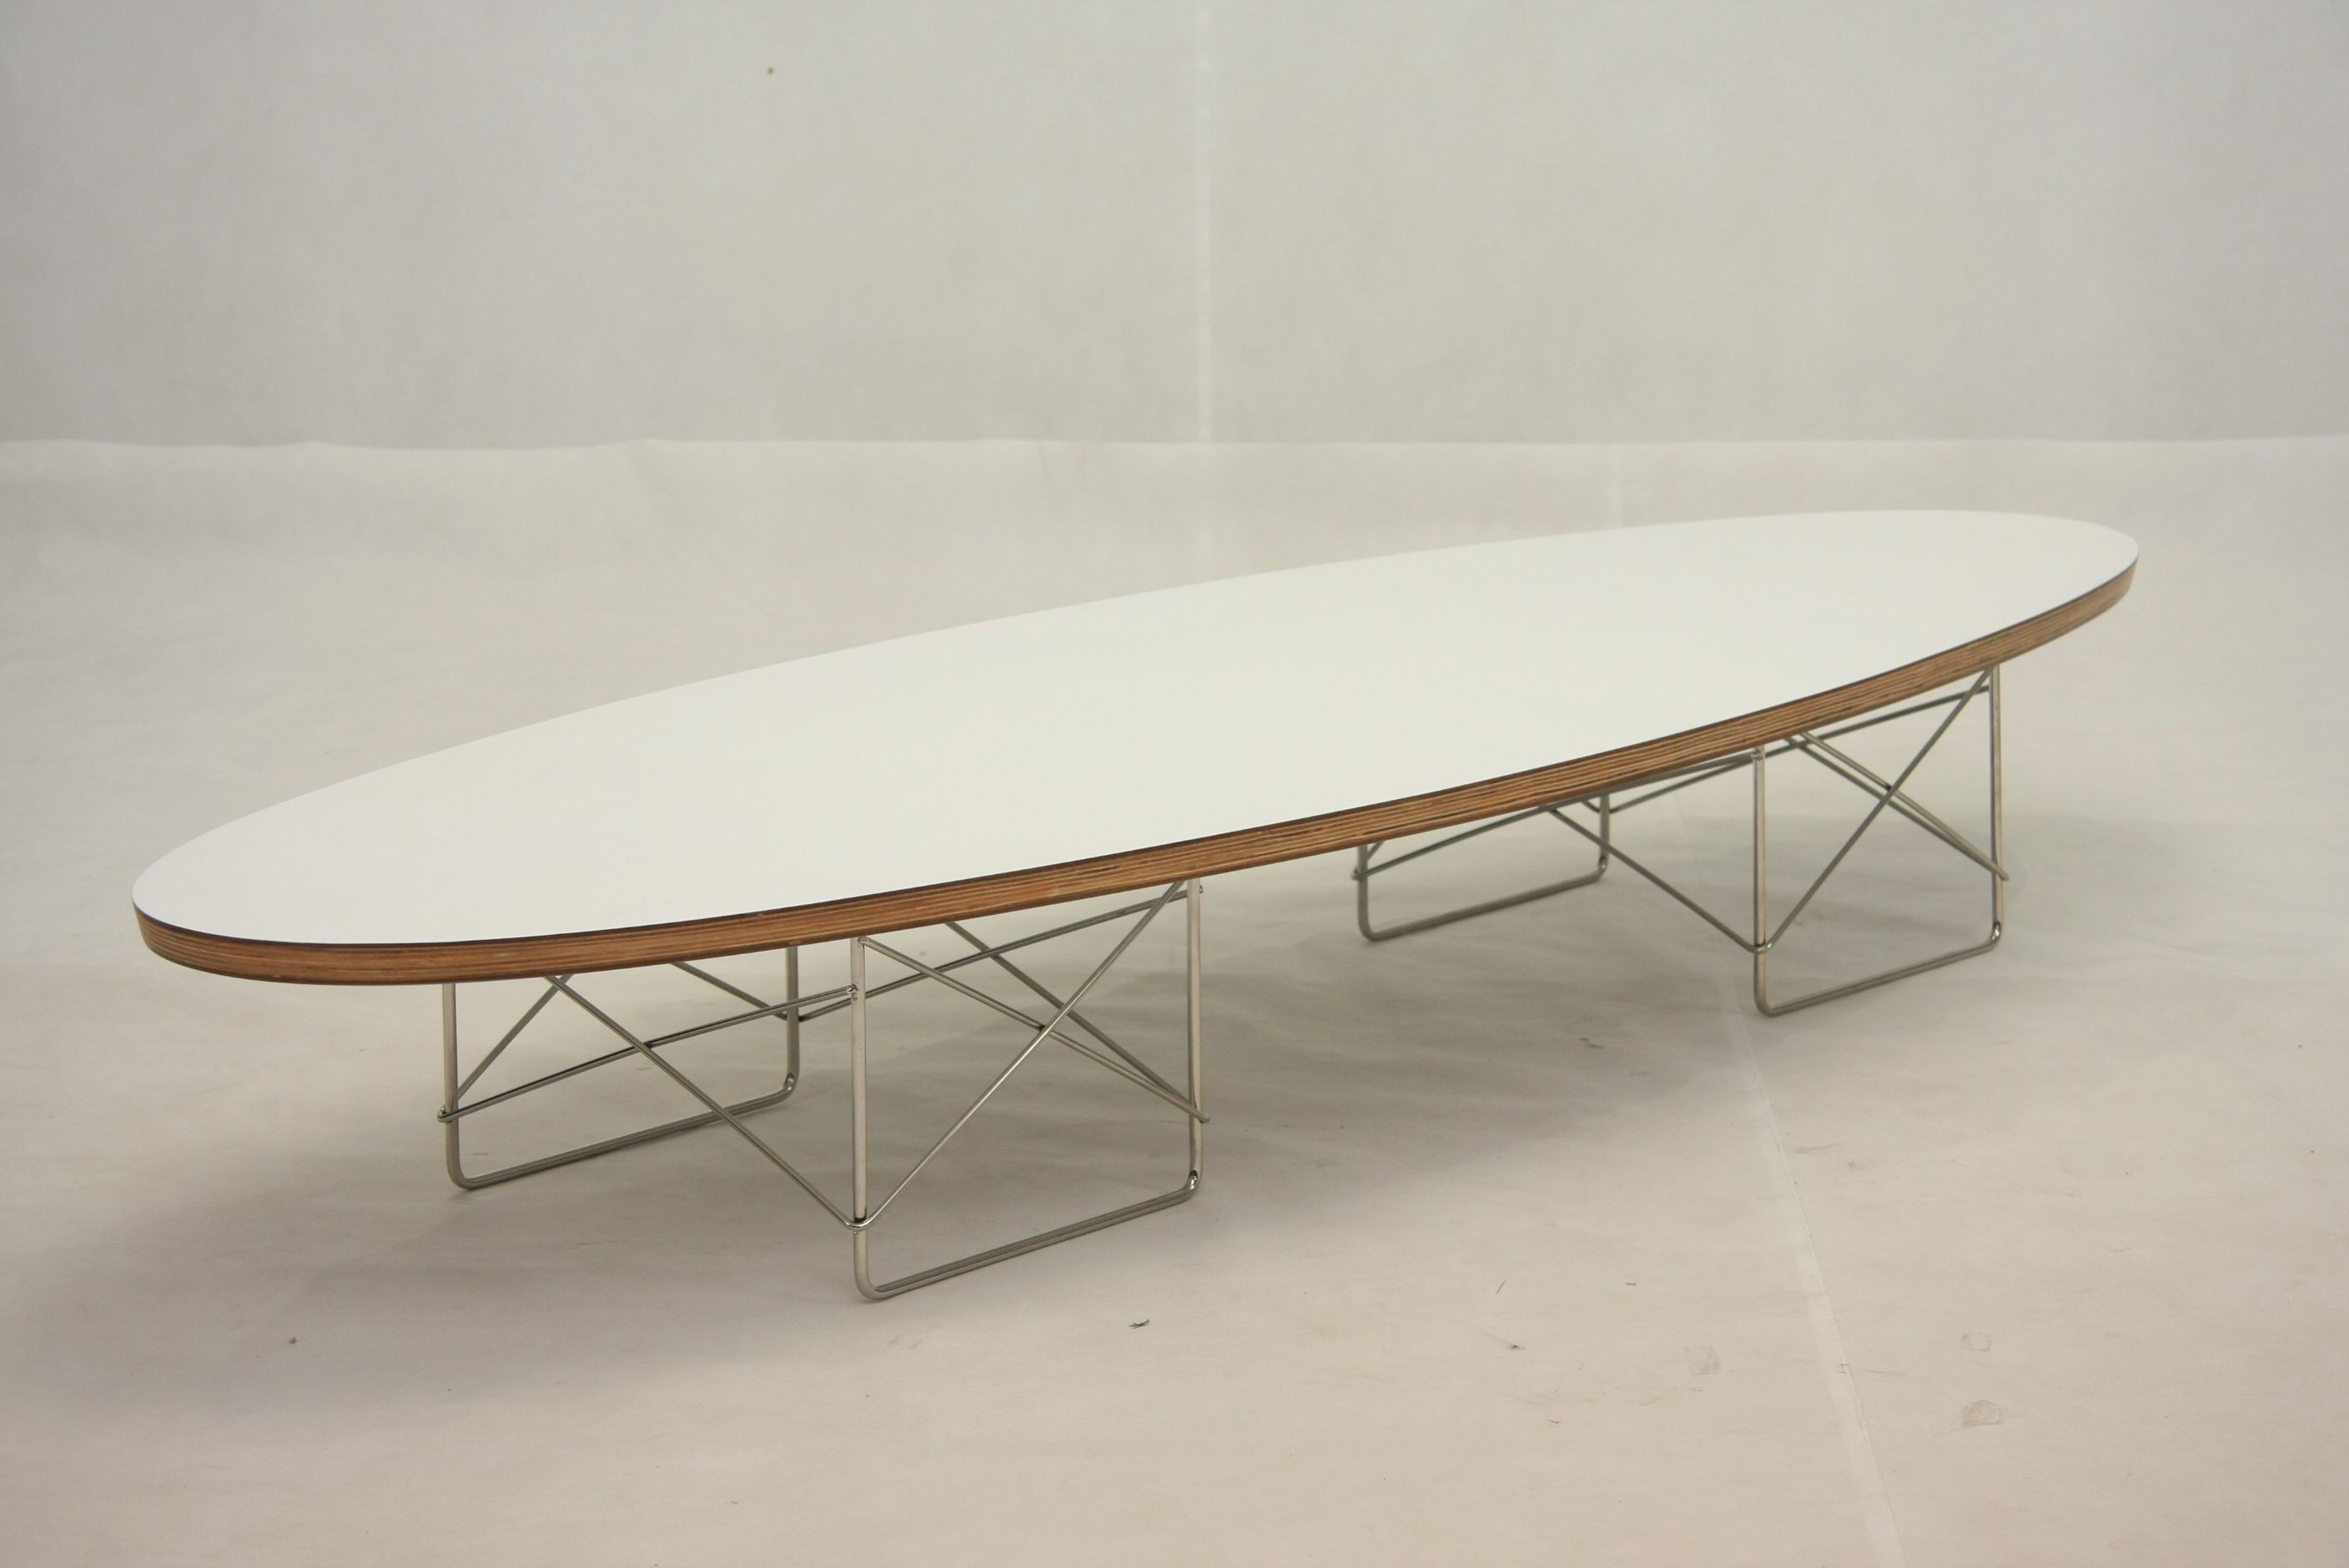 Eames Elliptical Table Sort Of Like A Skateboard On Steroids This Signature Eames Coffee Table Sculpture Is Eames Coffee Table Coffee Table Replica Furniture [ 1880 x 2816 Pixel ]